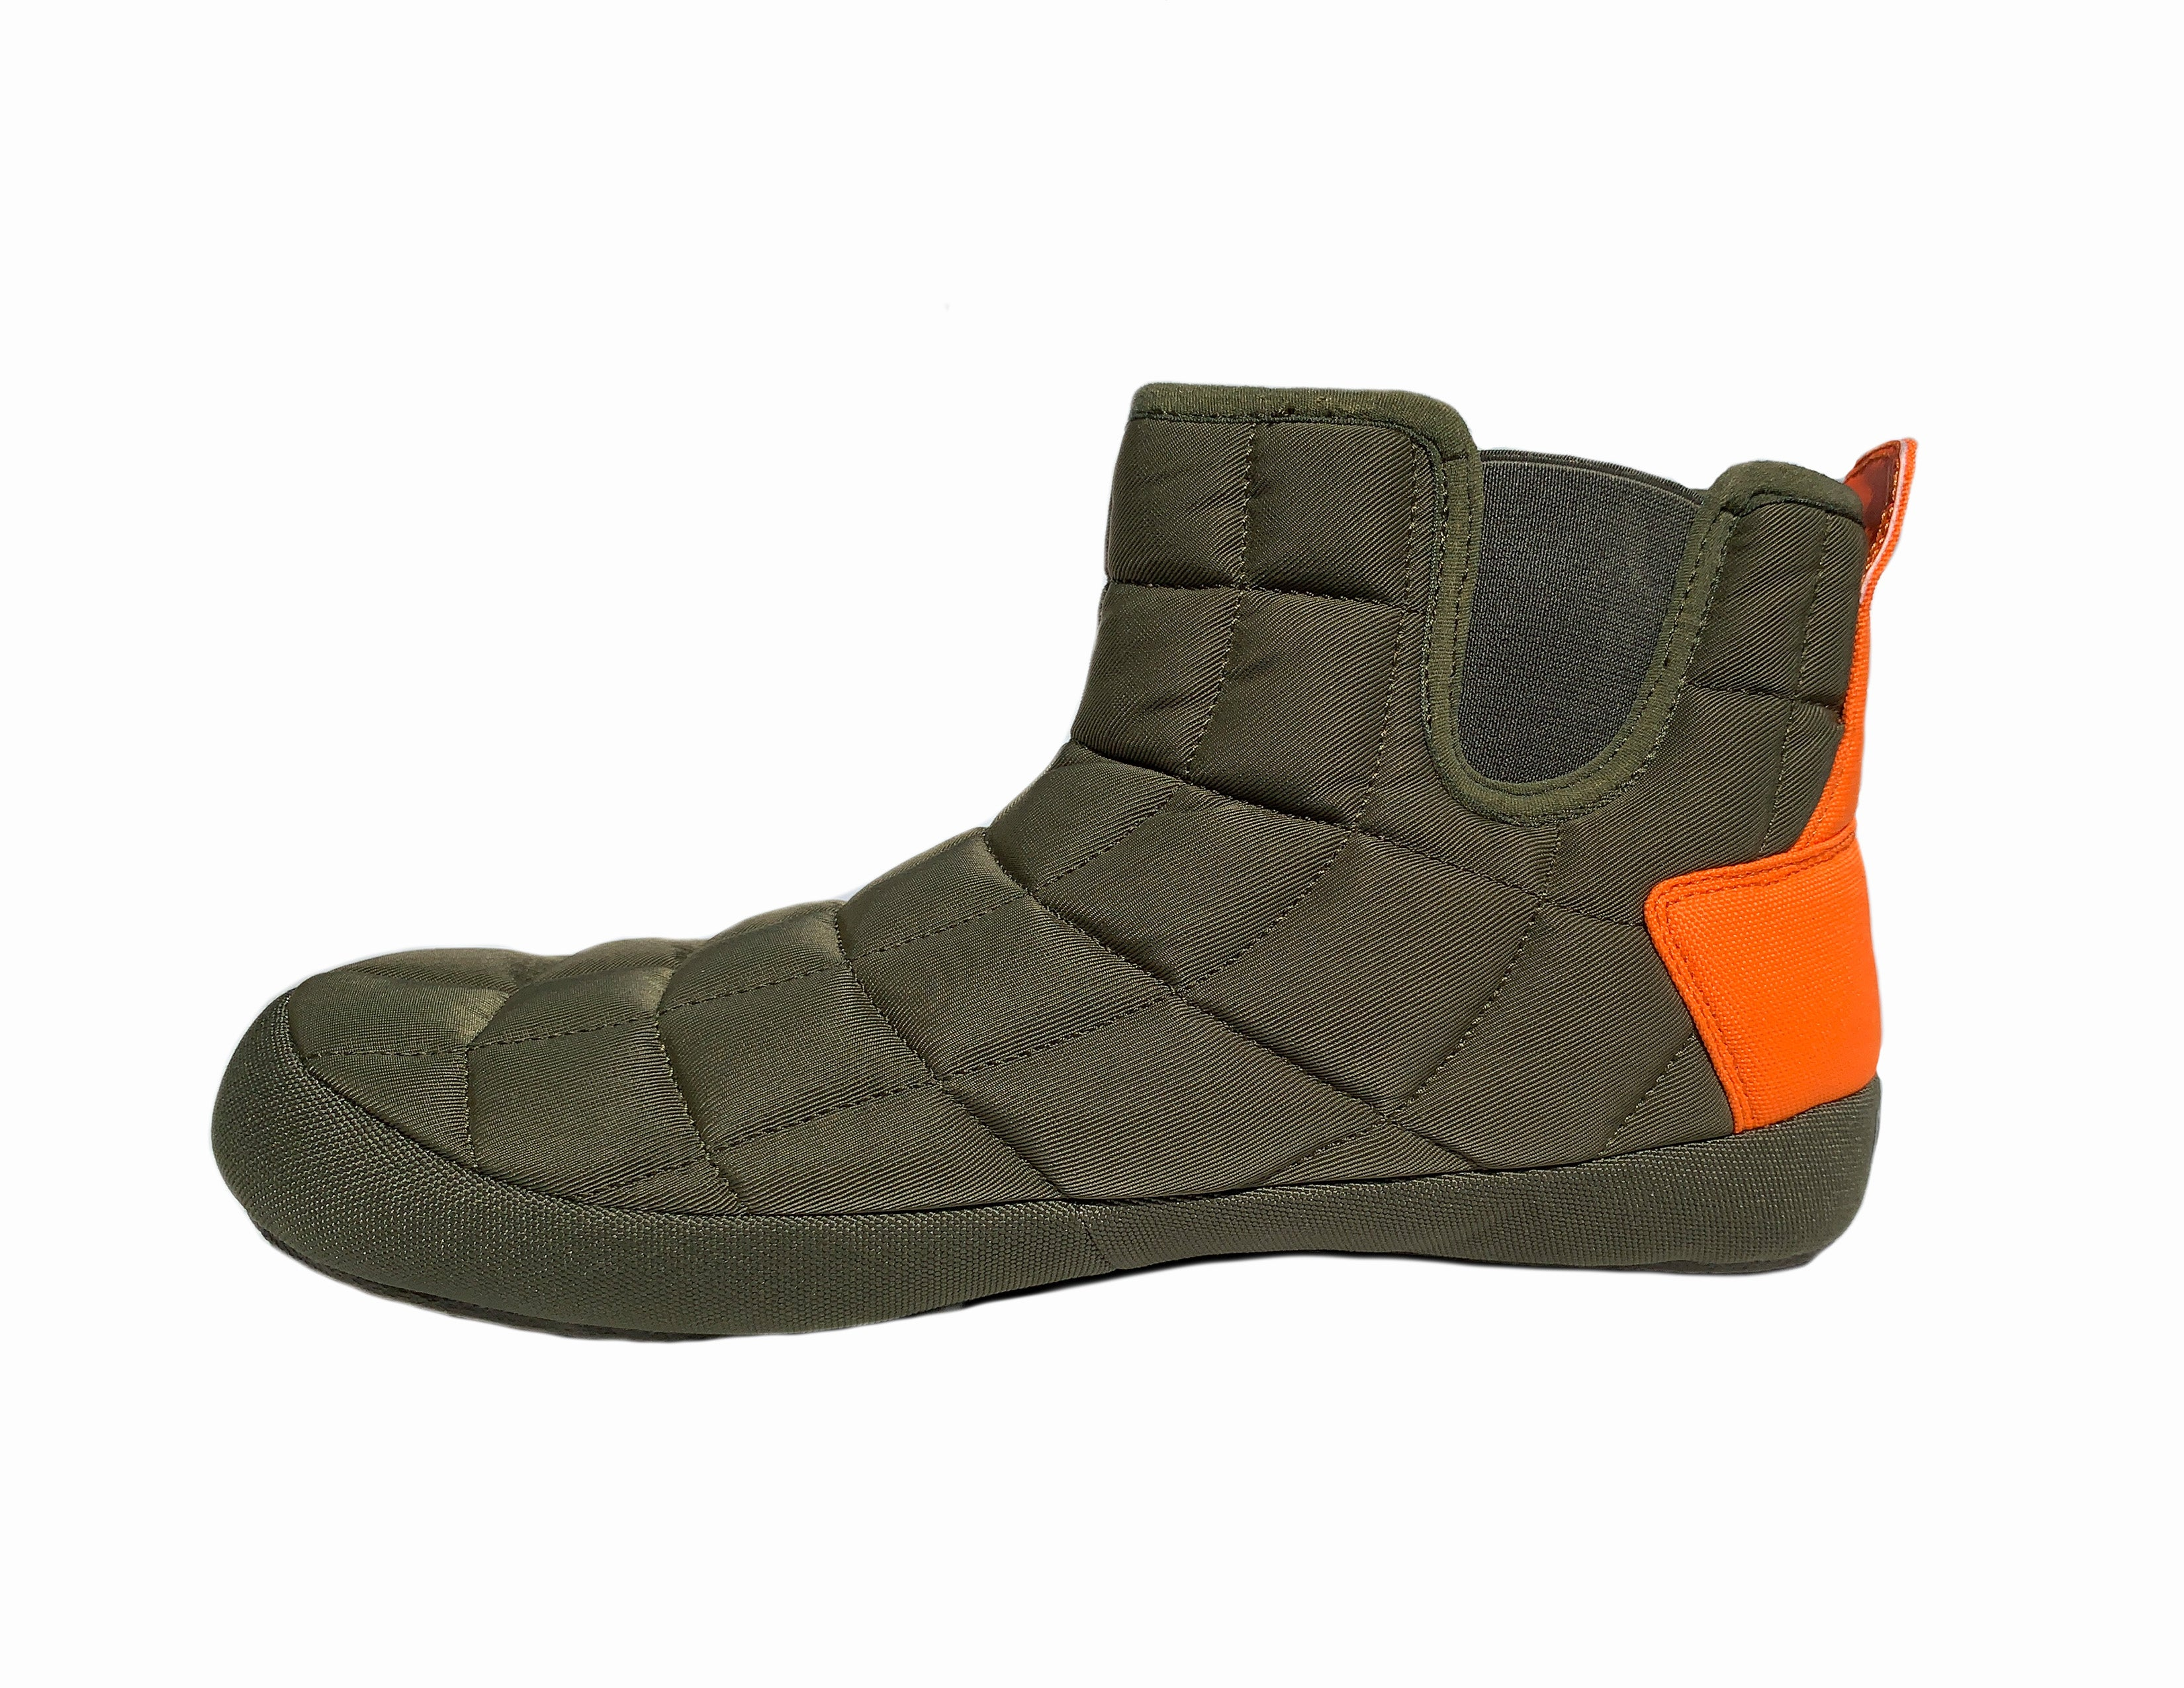 TORONTOES MENS OLIVE & ORANGE